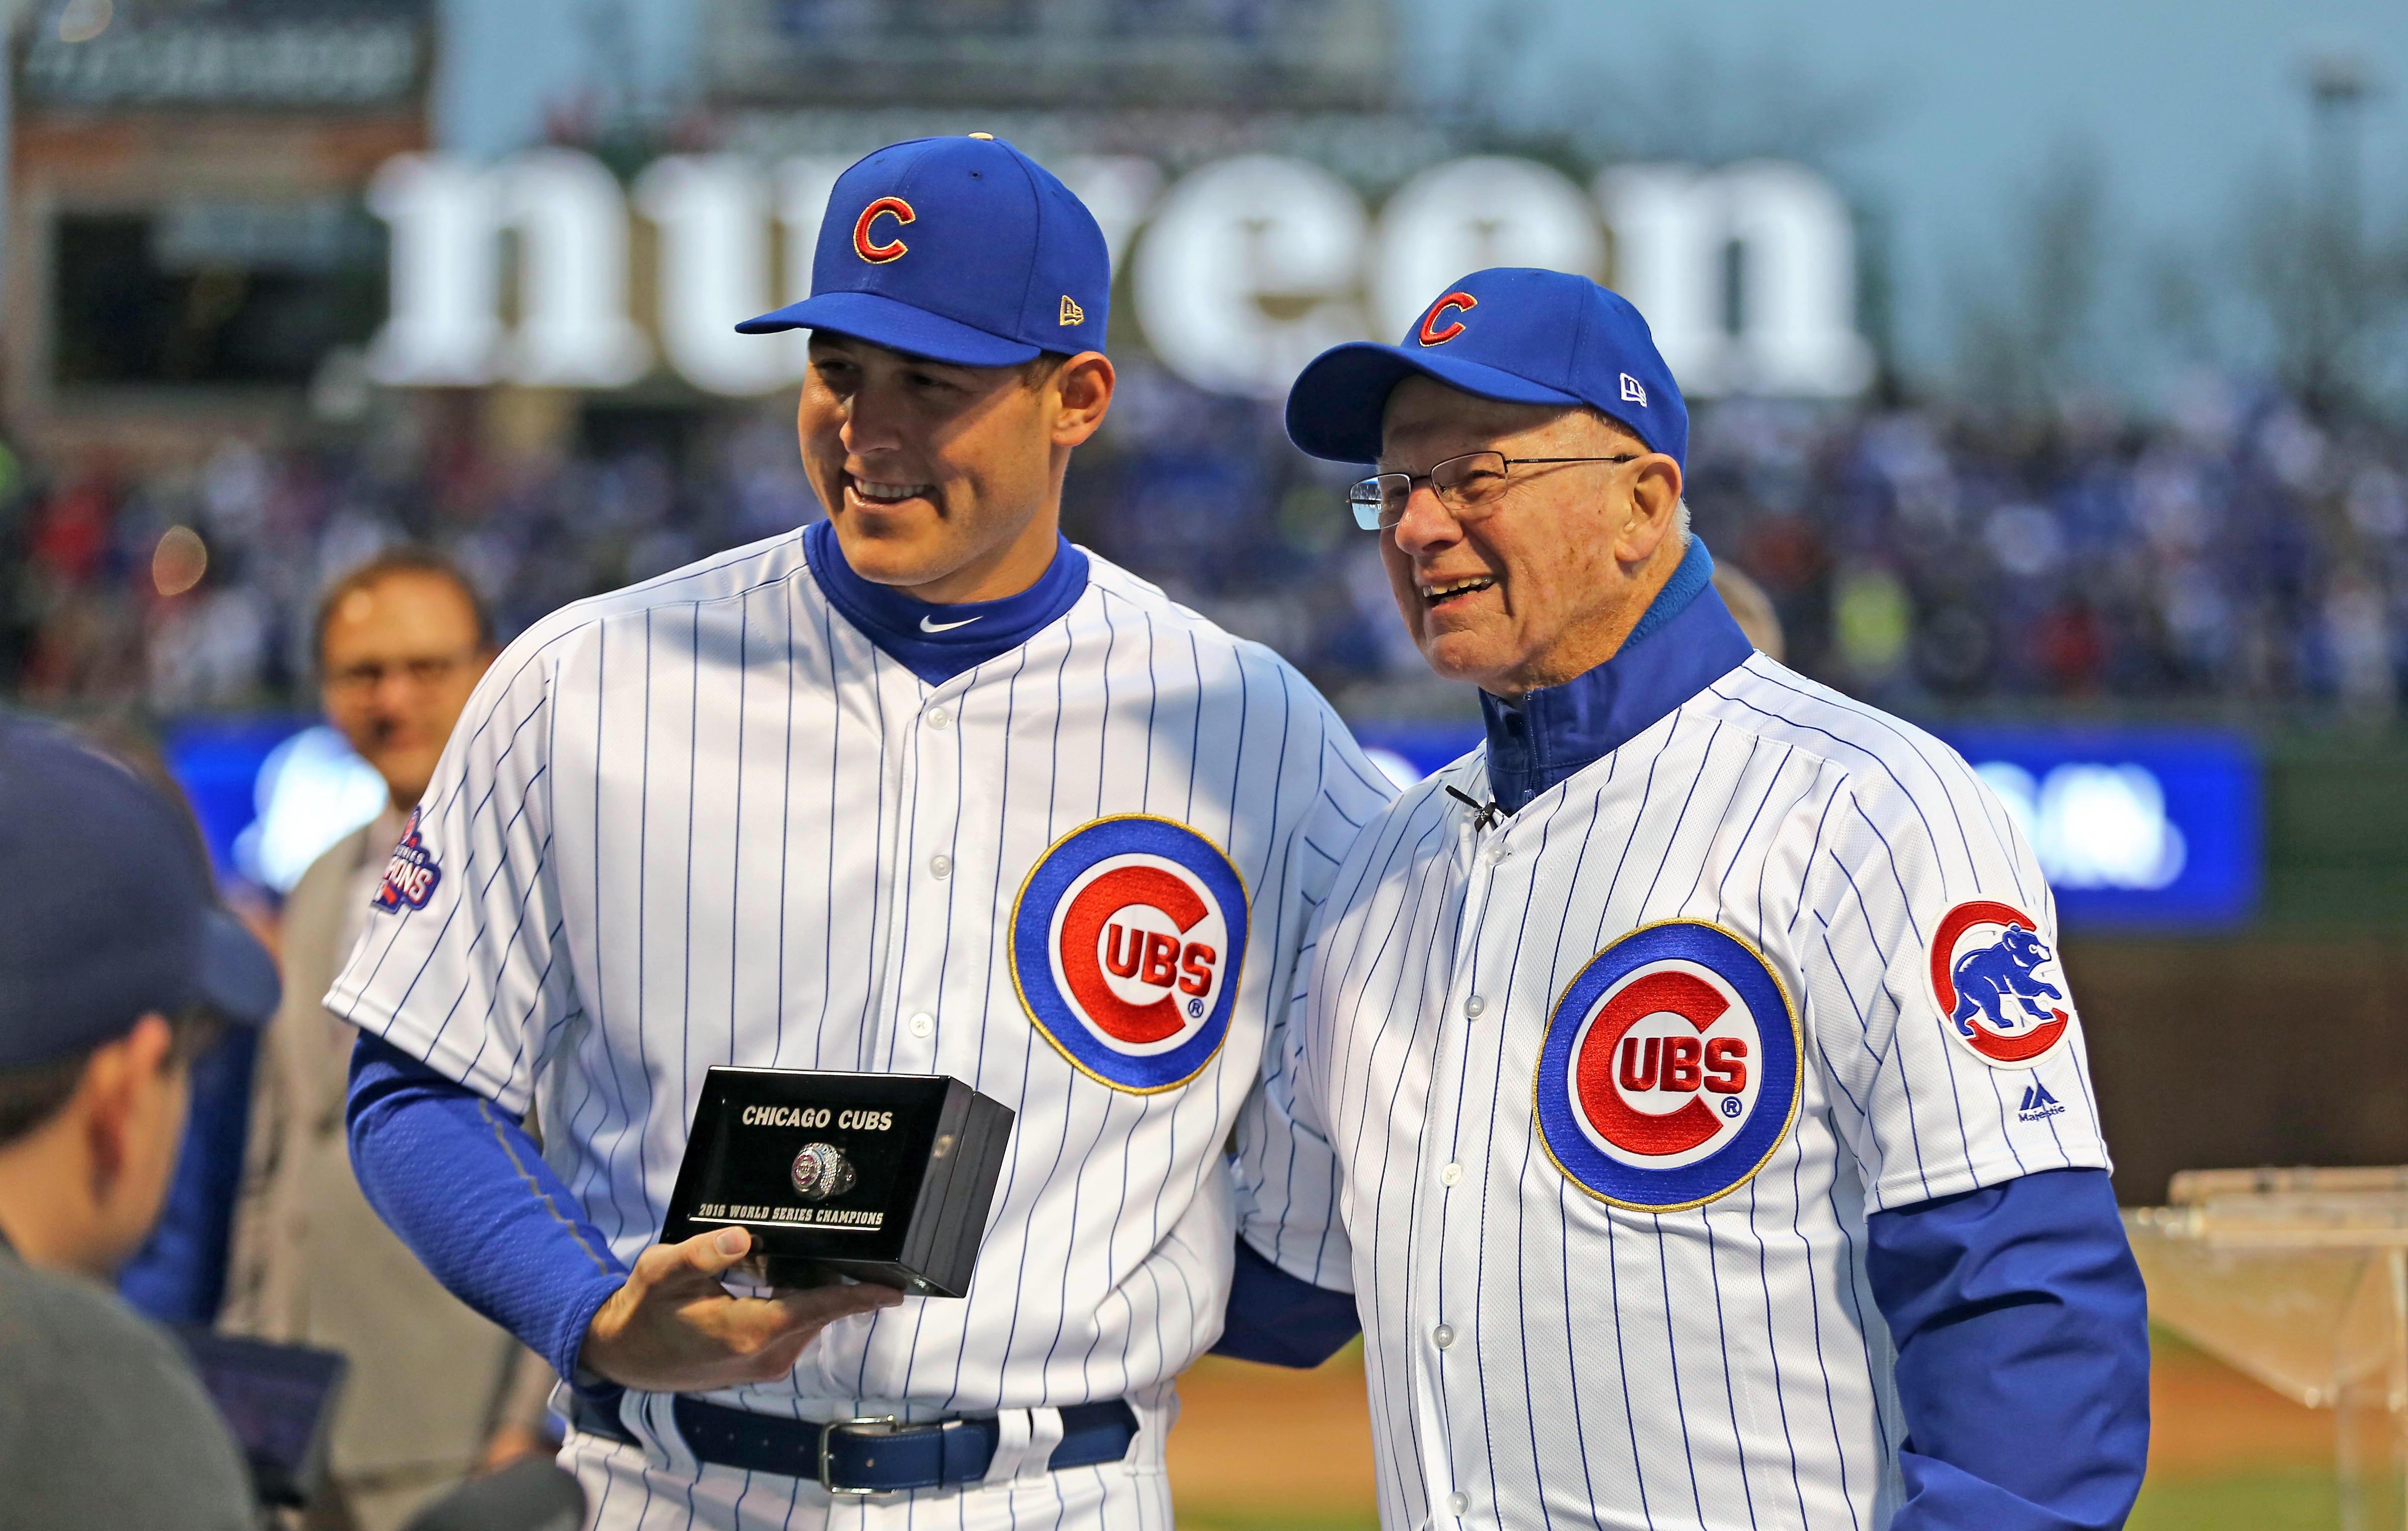 Apr 12, 2017; Chicago, IL, USA; Chicago Cubs first baseman Anthony Rizzo (44) is presented with his 2016 World Series championship ring before the game against the Los Angeles Dodgers at Wrigley Field. Mandatory Credit: Dennis Wierzbicki-USA TODAY Sports